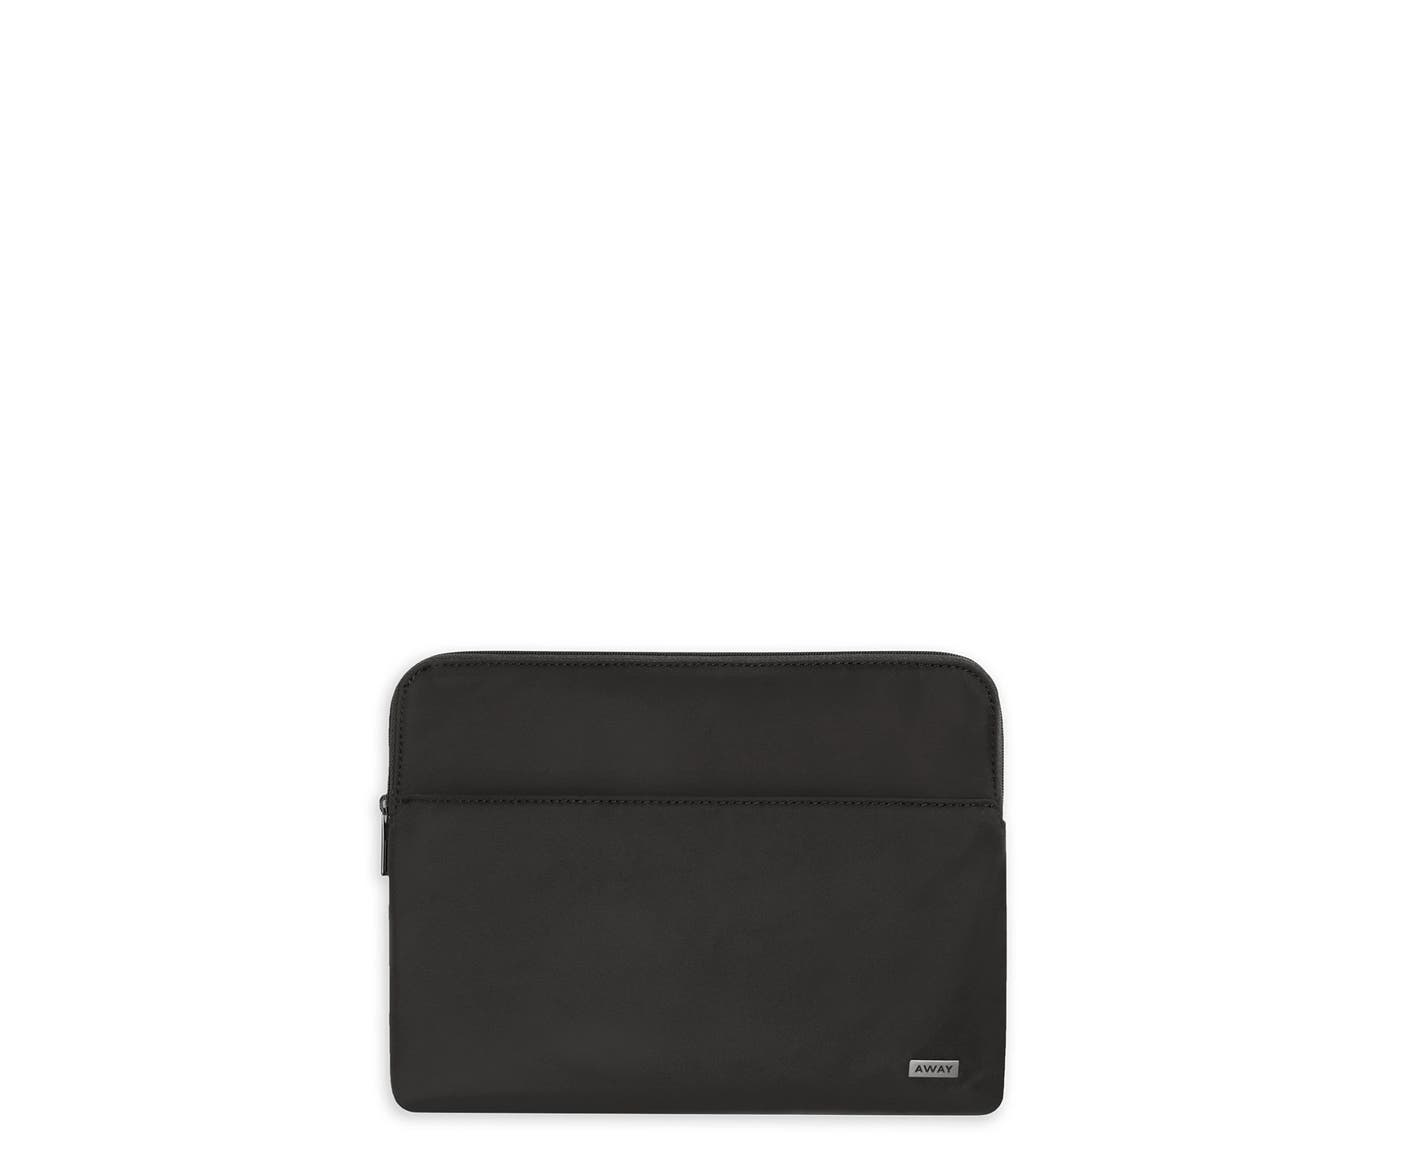 The Tablet Case